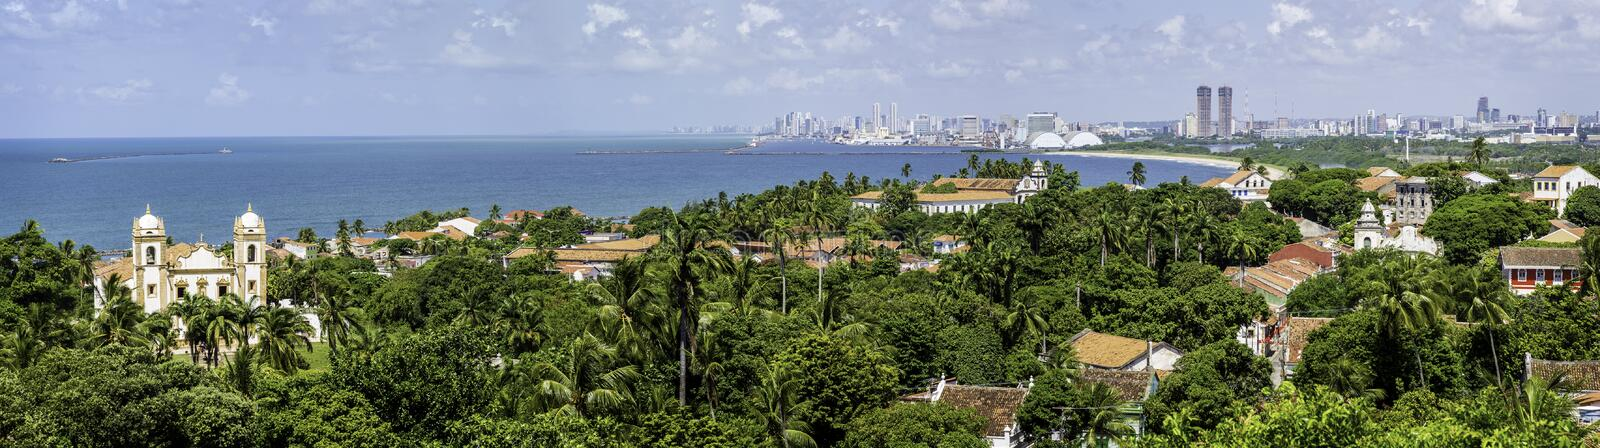 Olinda and Recife. Aerial view of Olinda and Recife in Pernambuco, Brazil on a sunny summer day stock photos